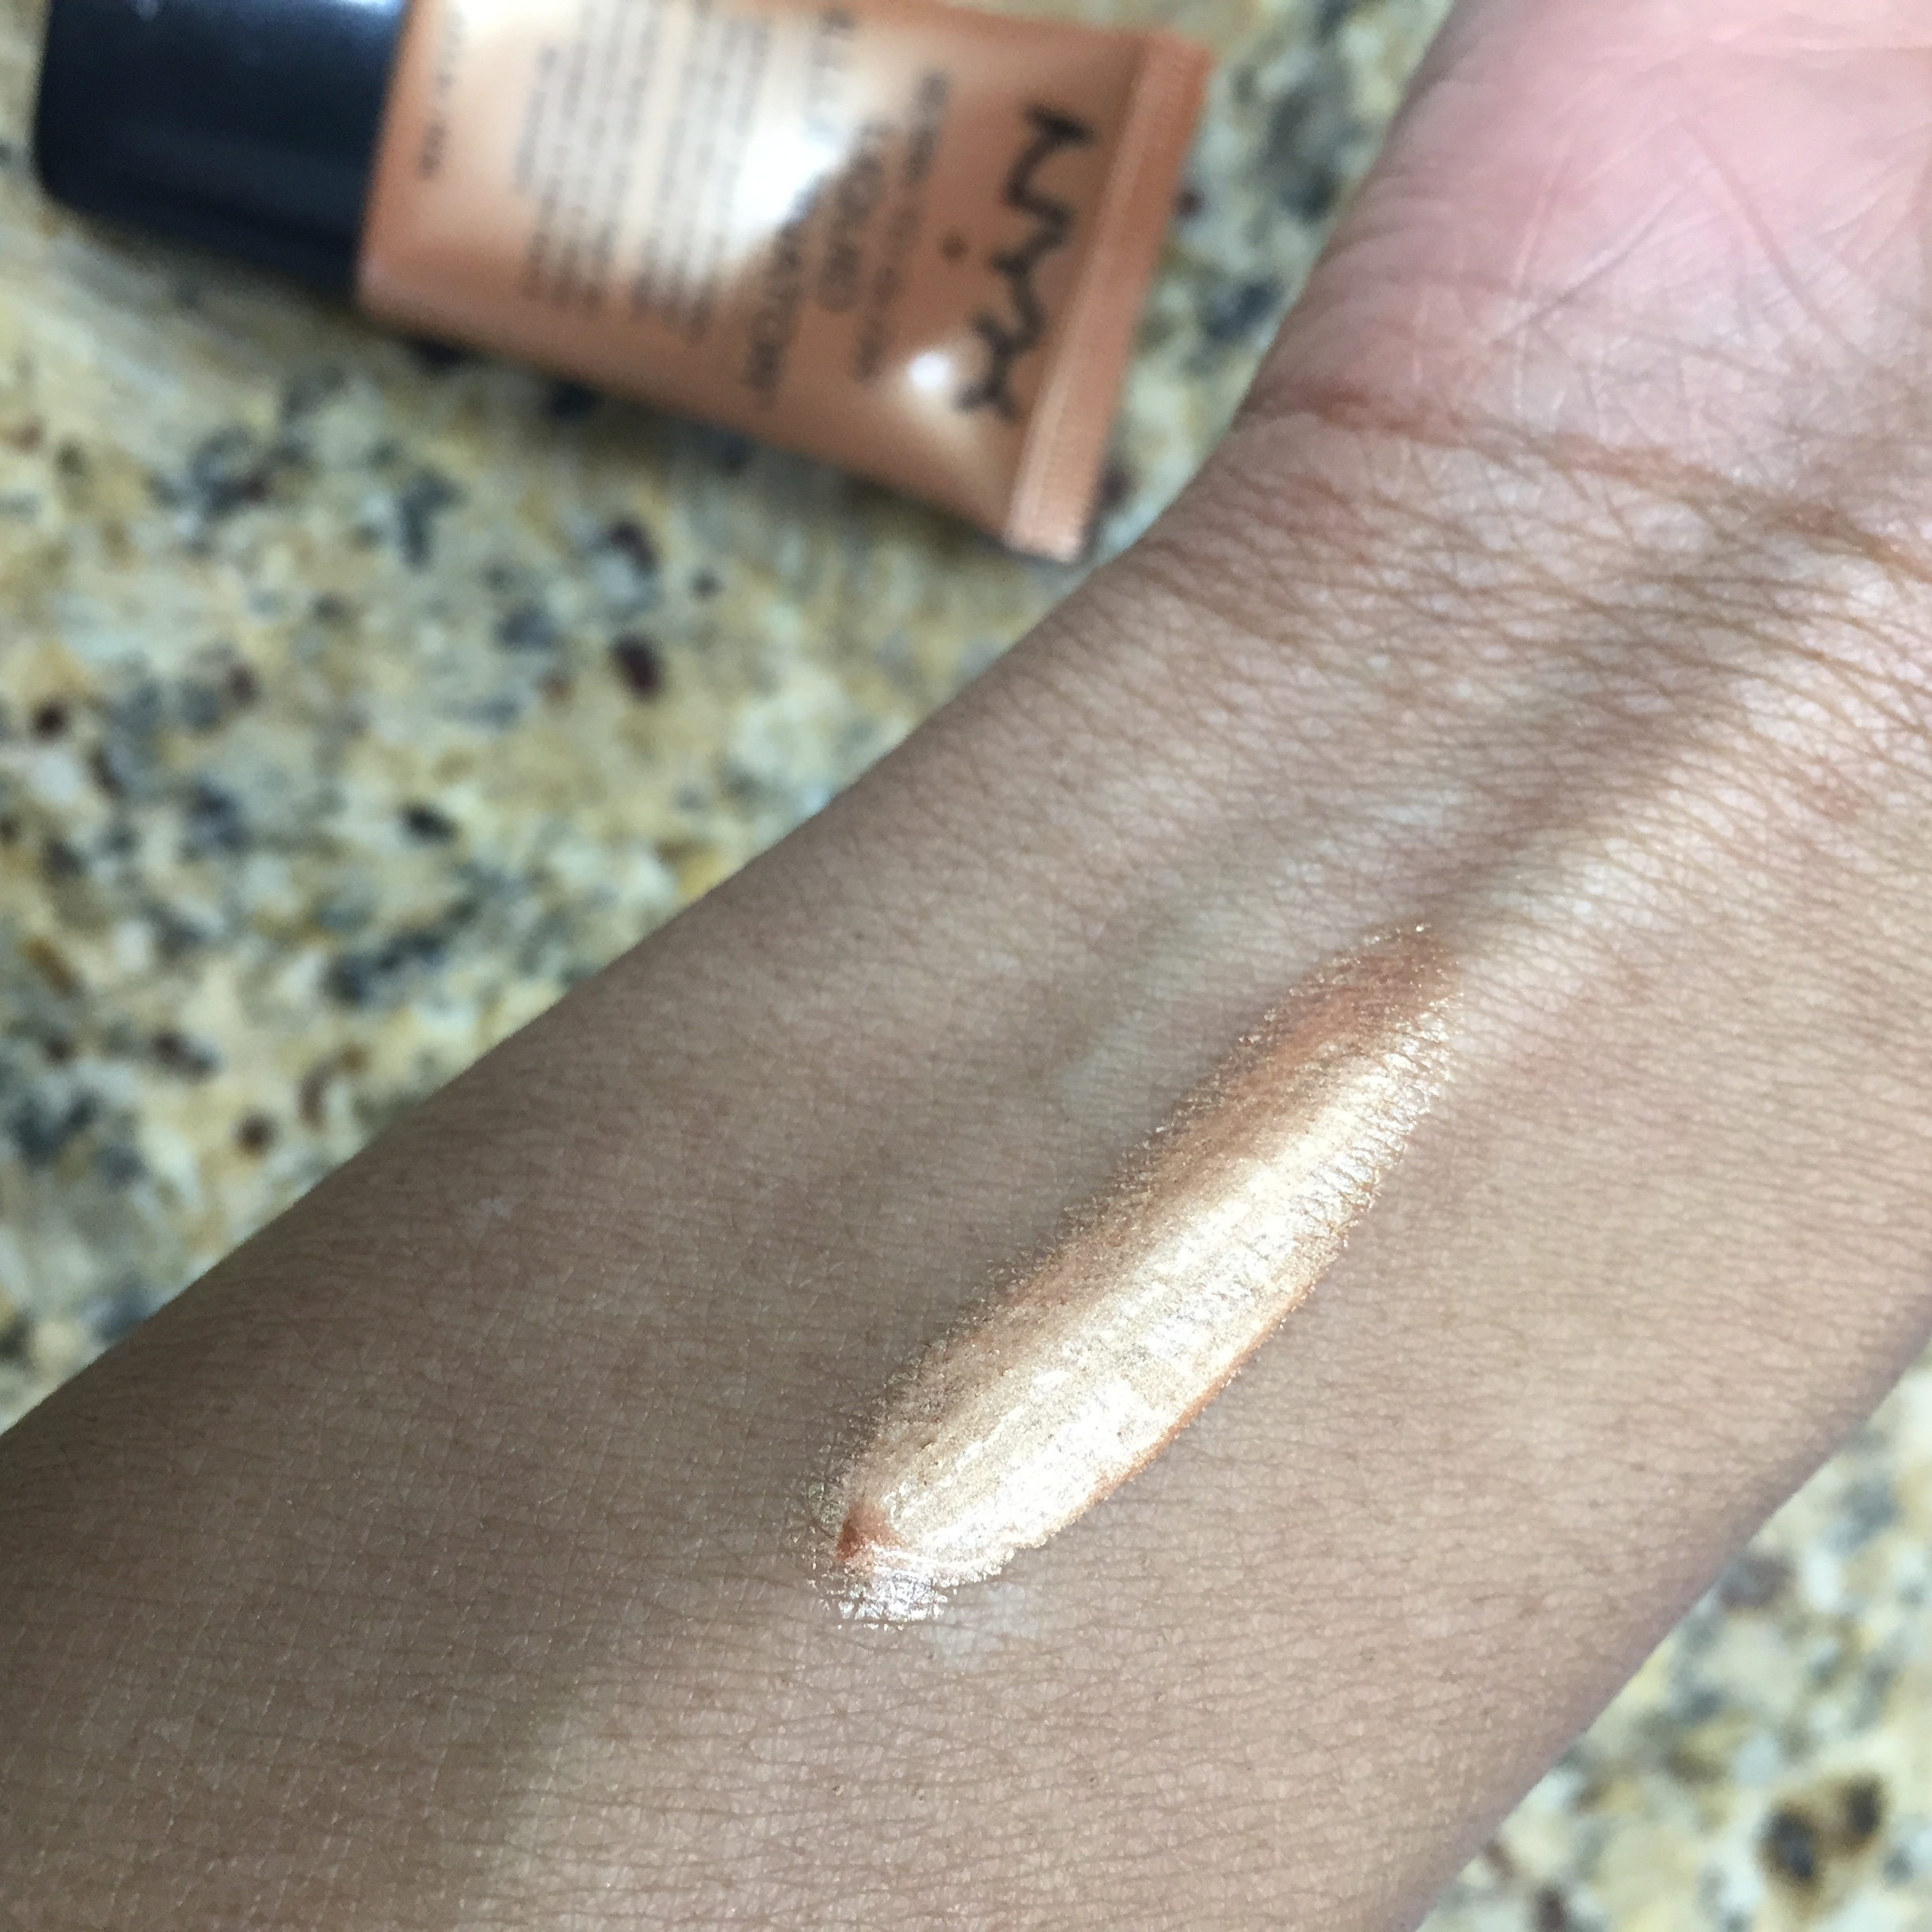 Straight out of the tube, before I blend the product in.